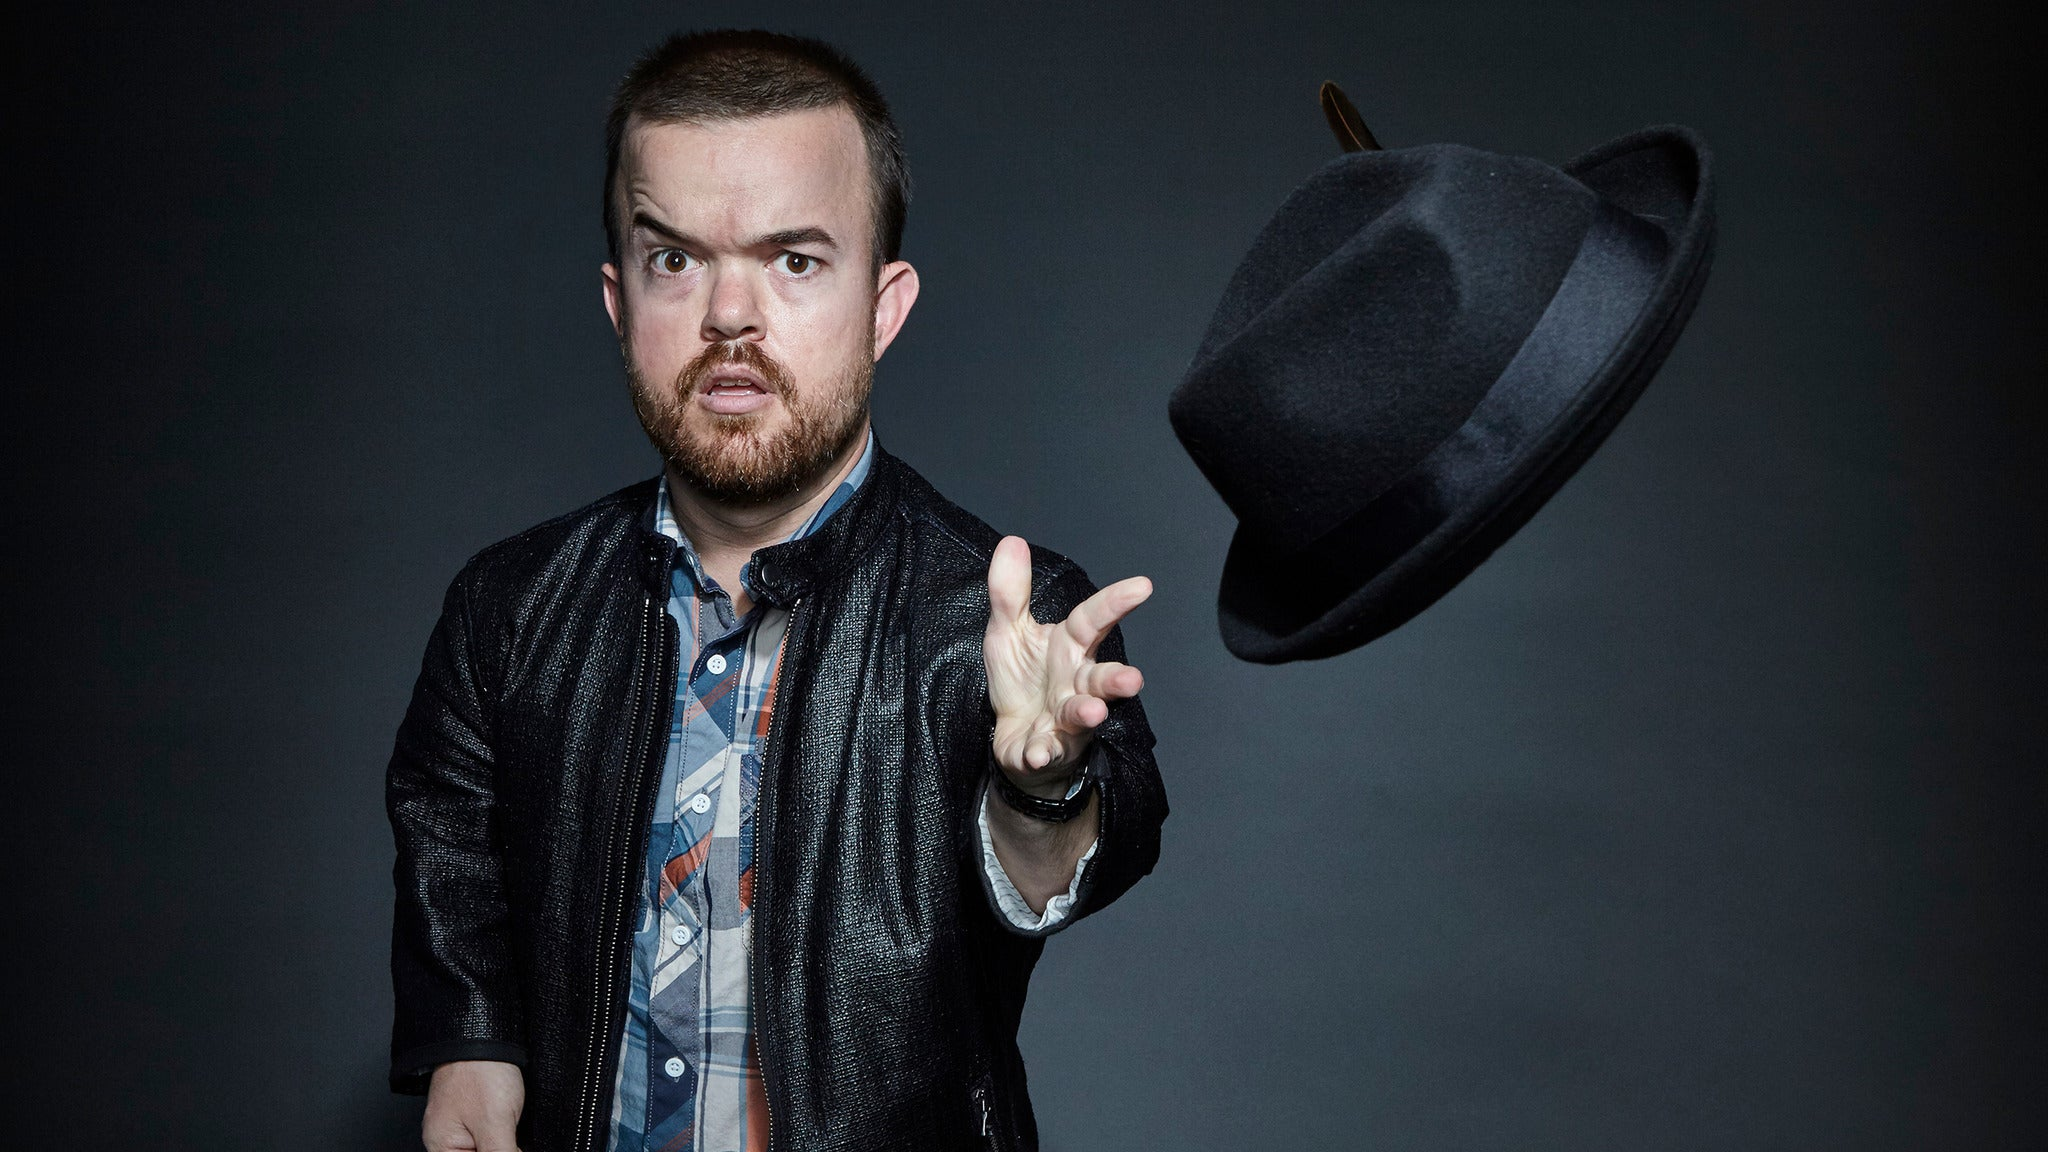 Brad Williams at Oxnard Levity Live - Oxnard, CA 93036